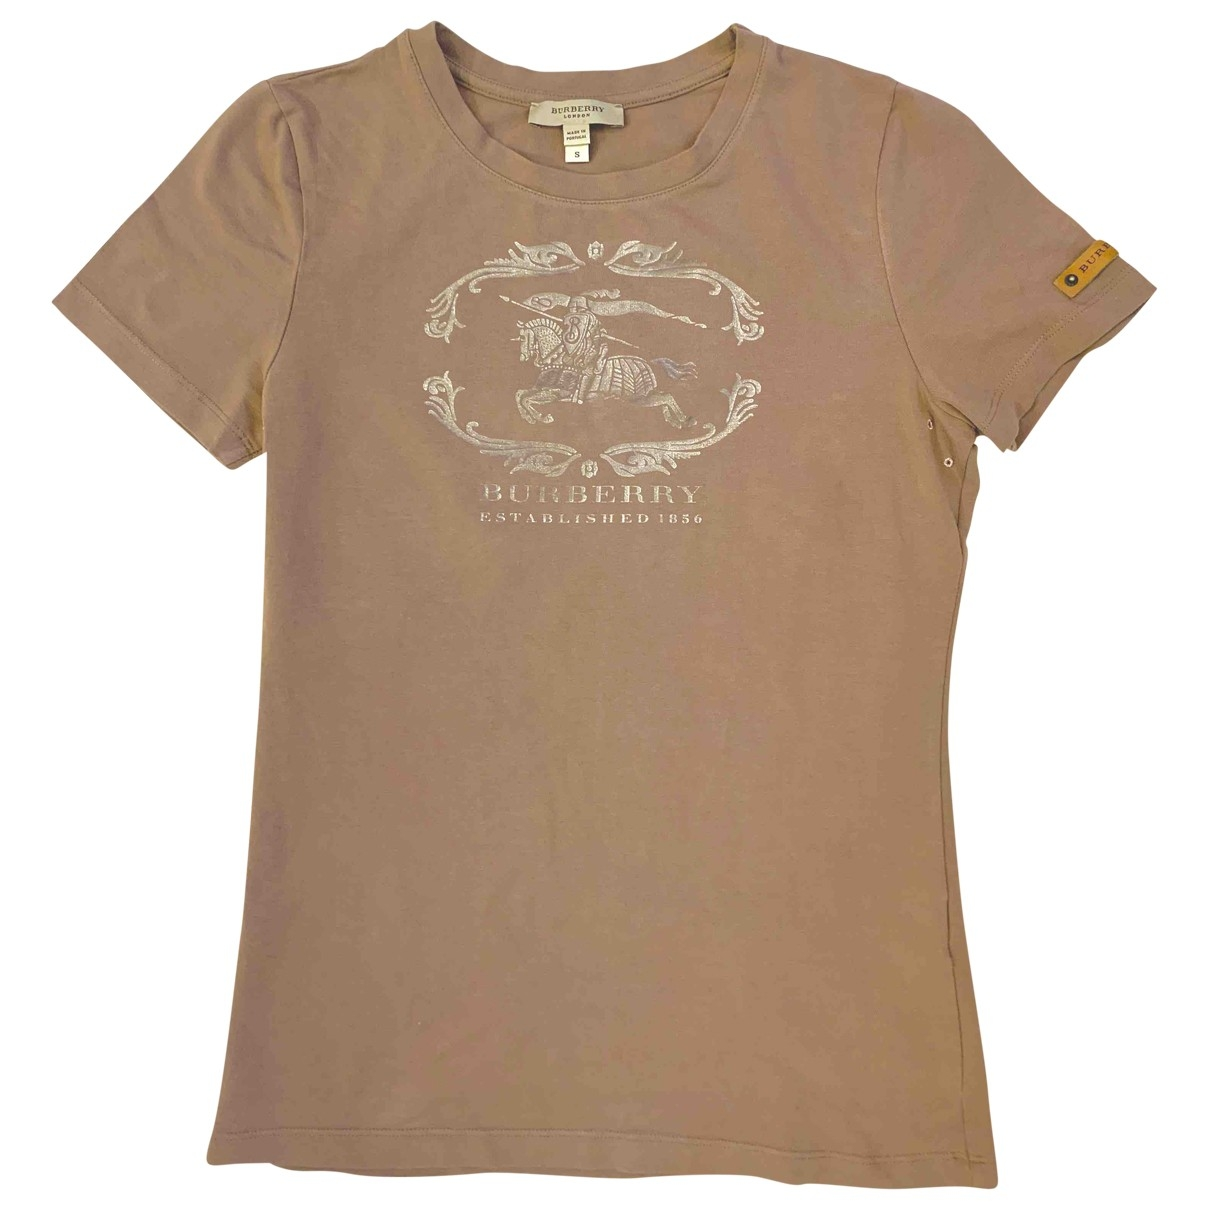 Burberry \N Brown Cotton  top for Women S International